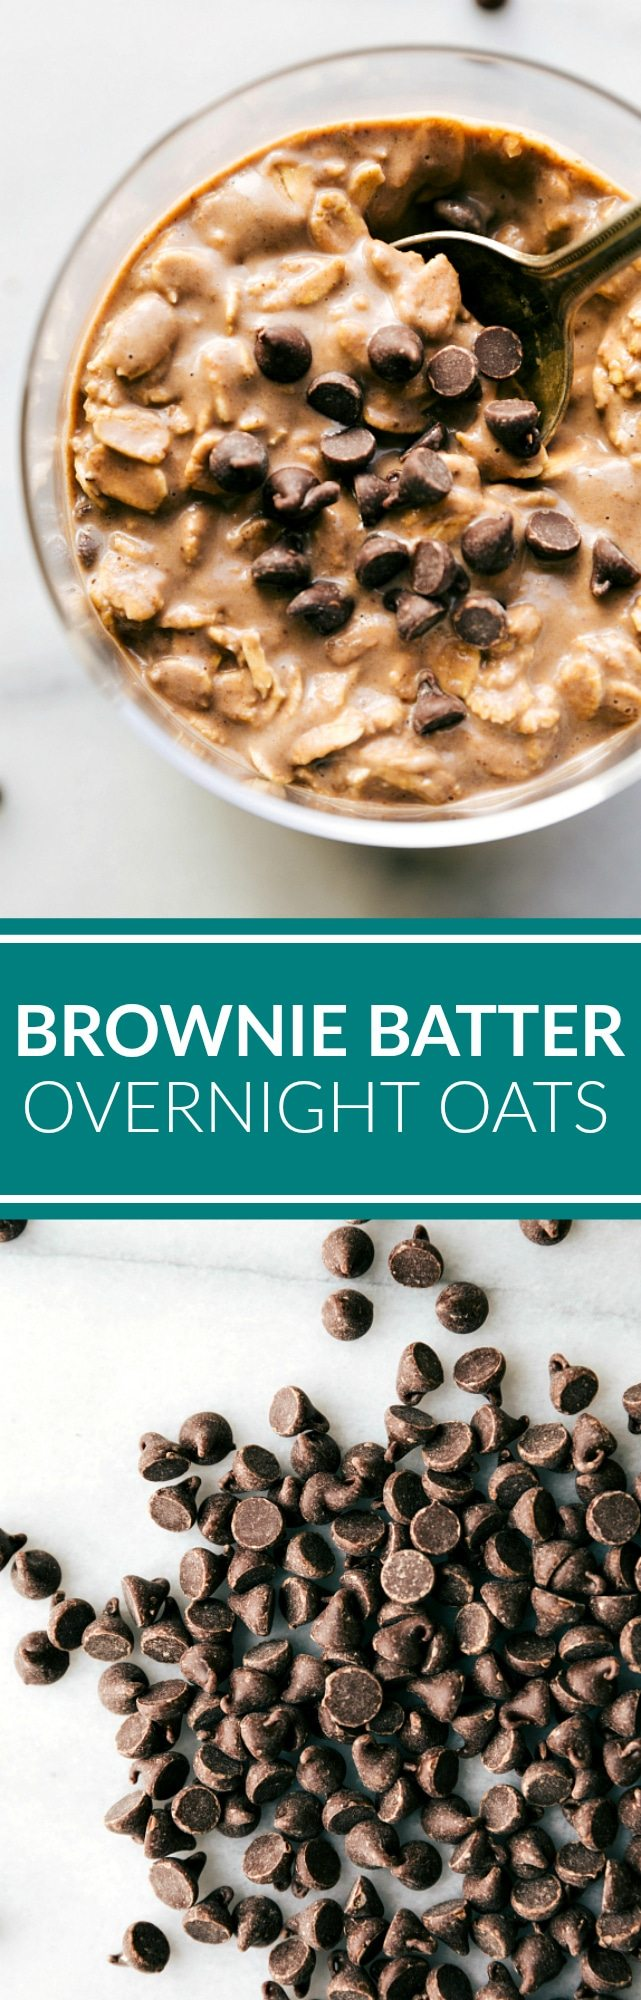 A double-chocolate, brownie flavored batch of overnight oats. These take minutes to prepare and taste so good it will be like eating dessert for breakfast. Recipe via chelseasmessyapron.com